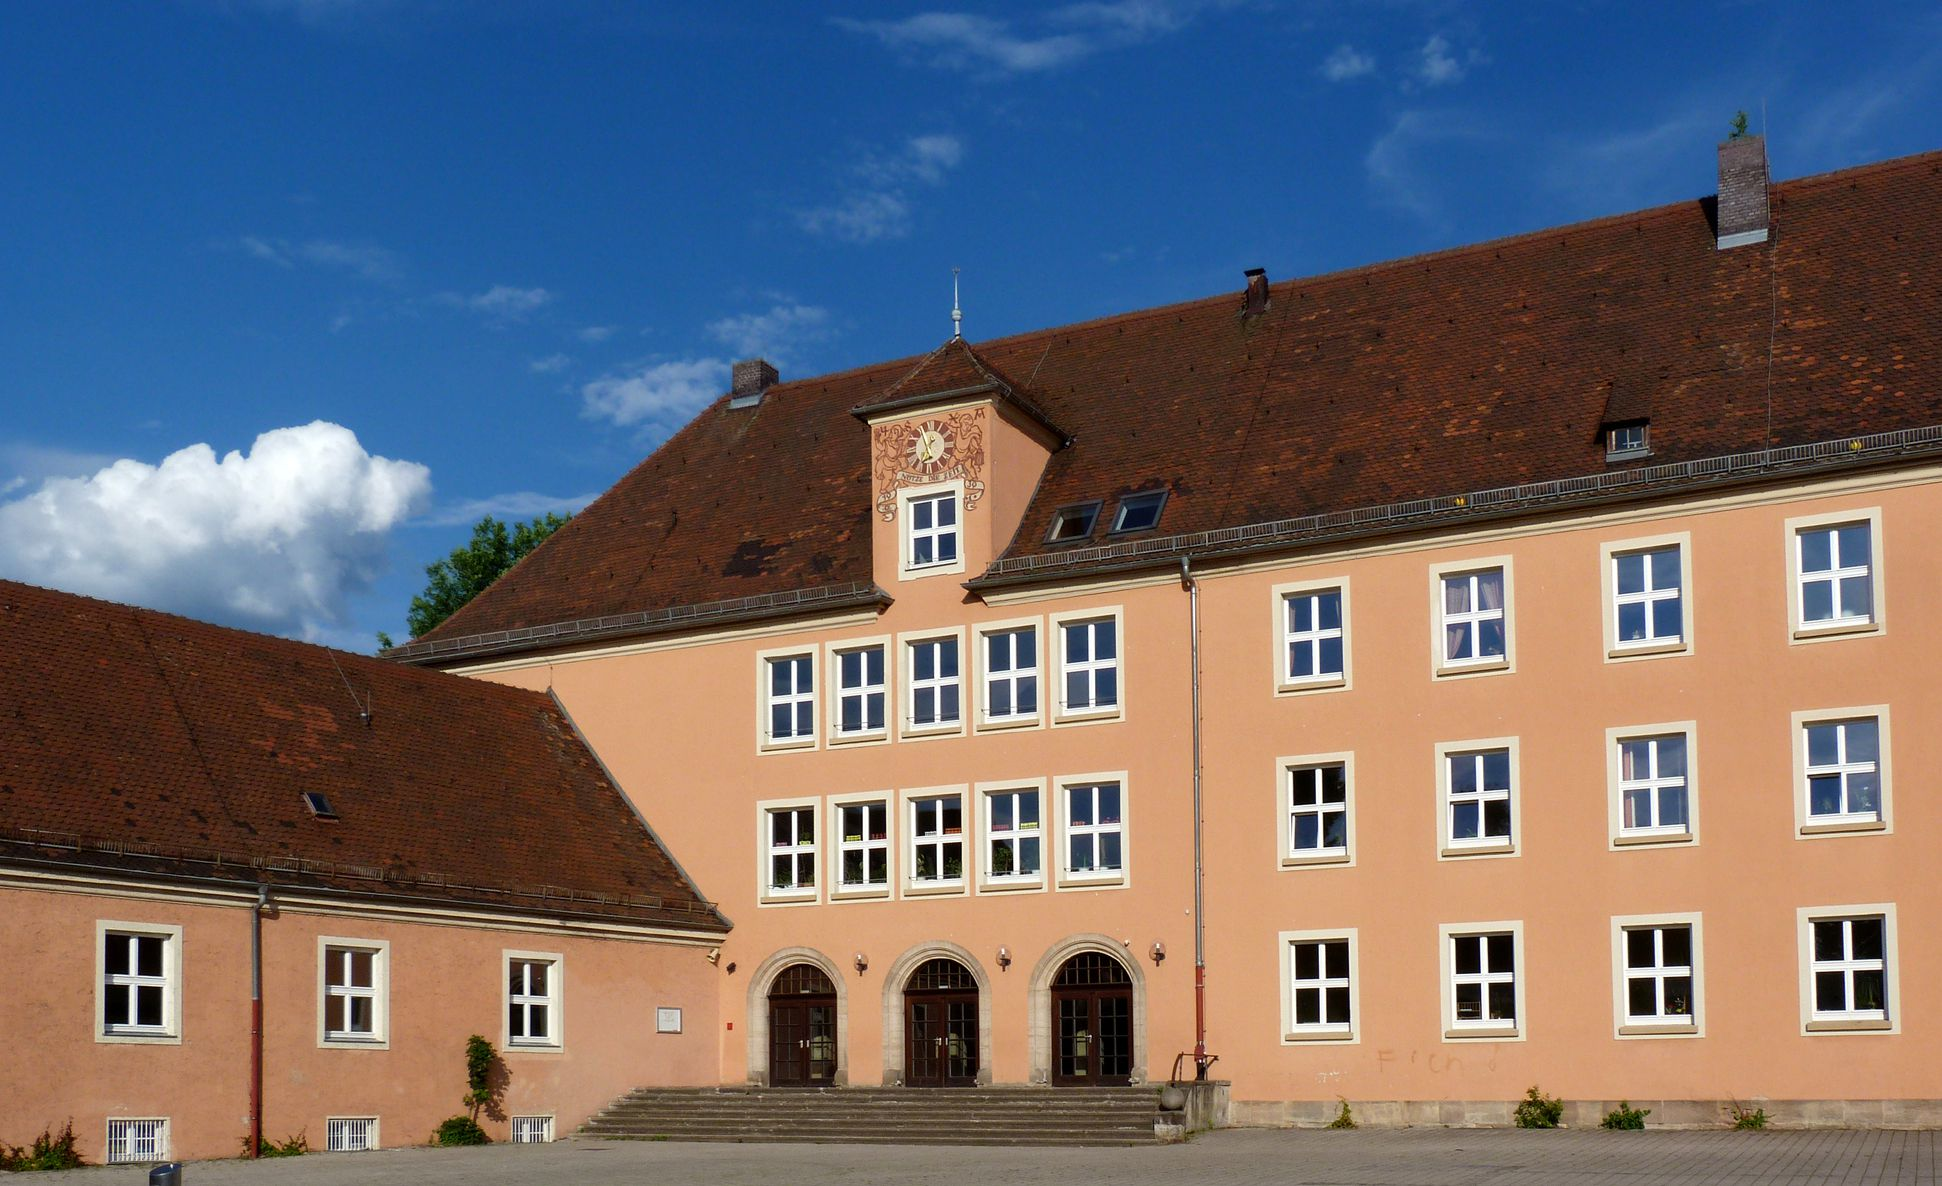 Konrad-Groß-School Courtyard front with entrance